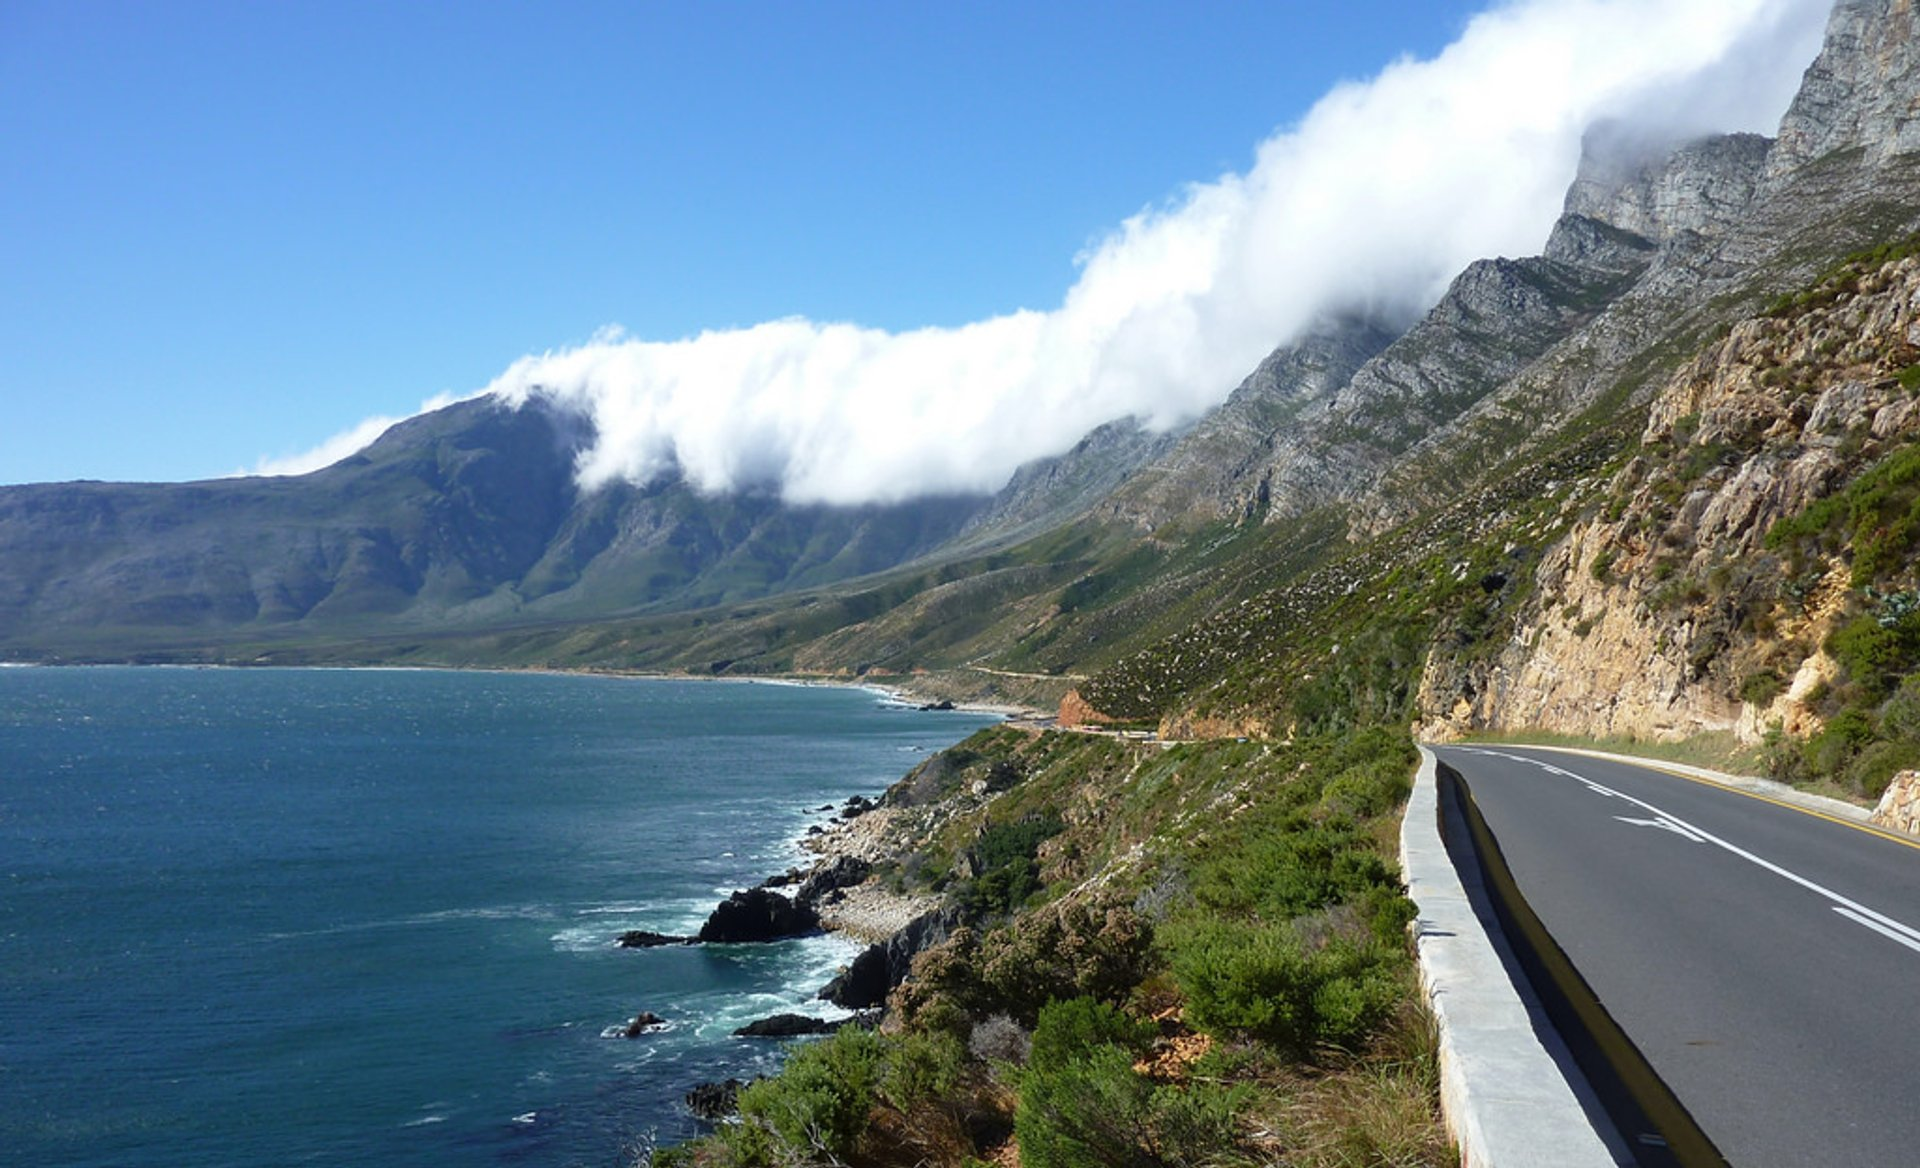 Coastal vista along the wonderfully scenic R44 Coastal Road between Rooi-Els and Gordon's Bay